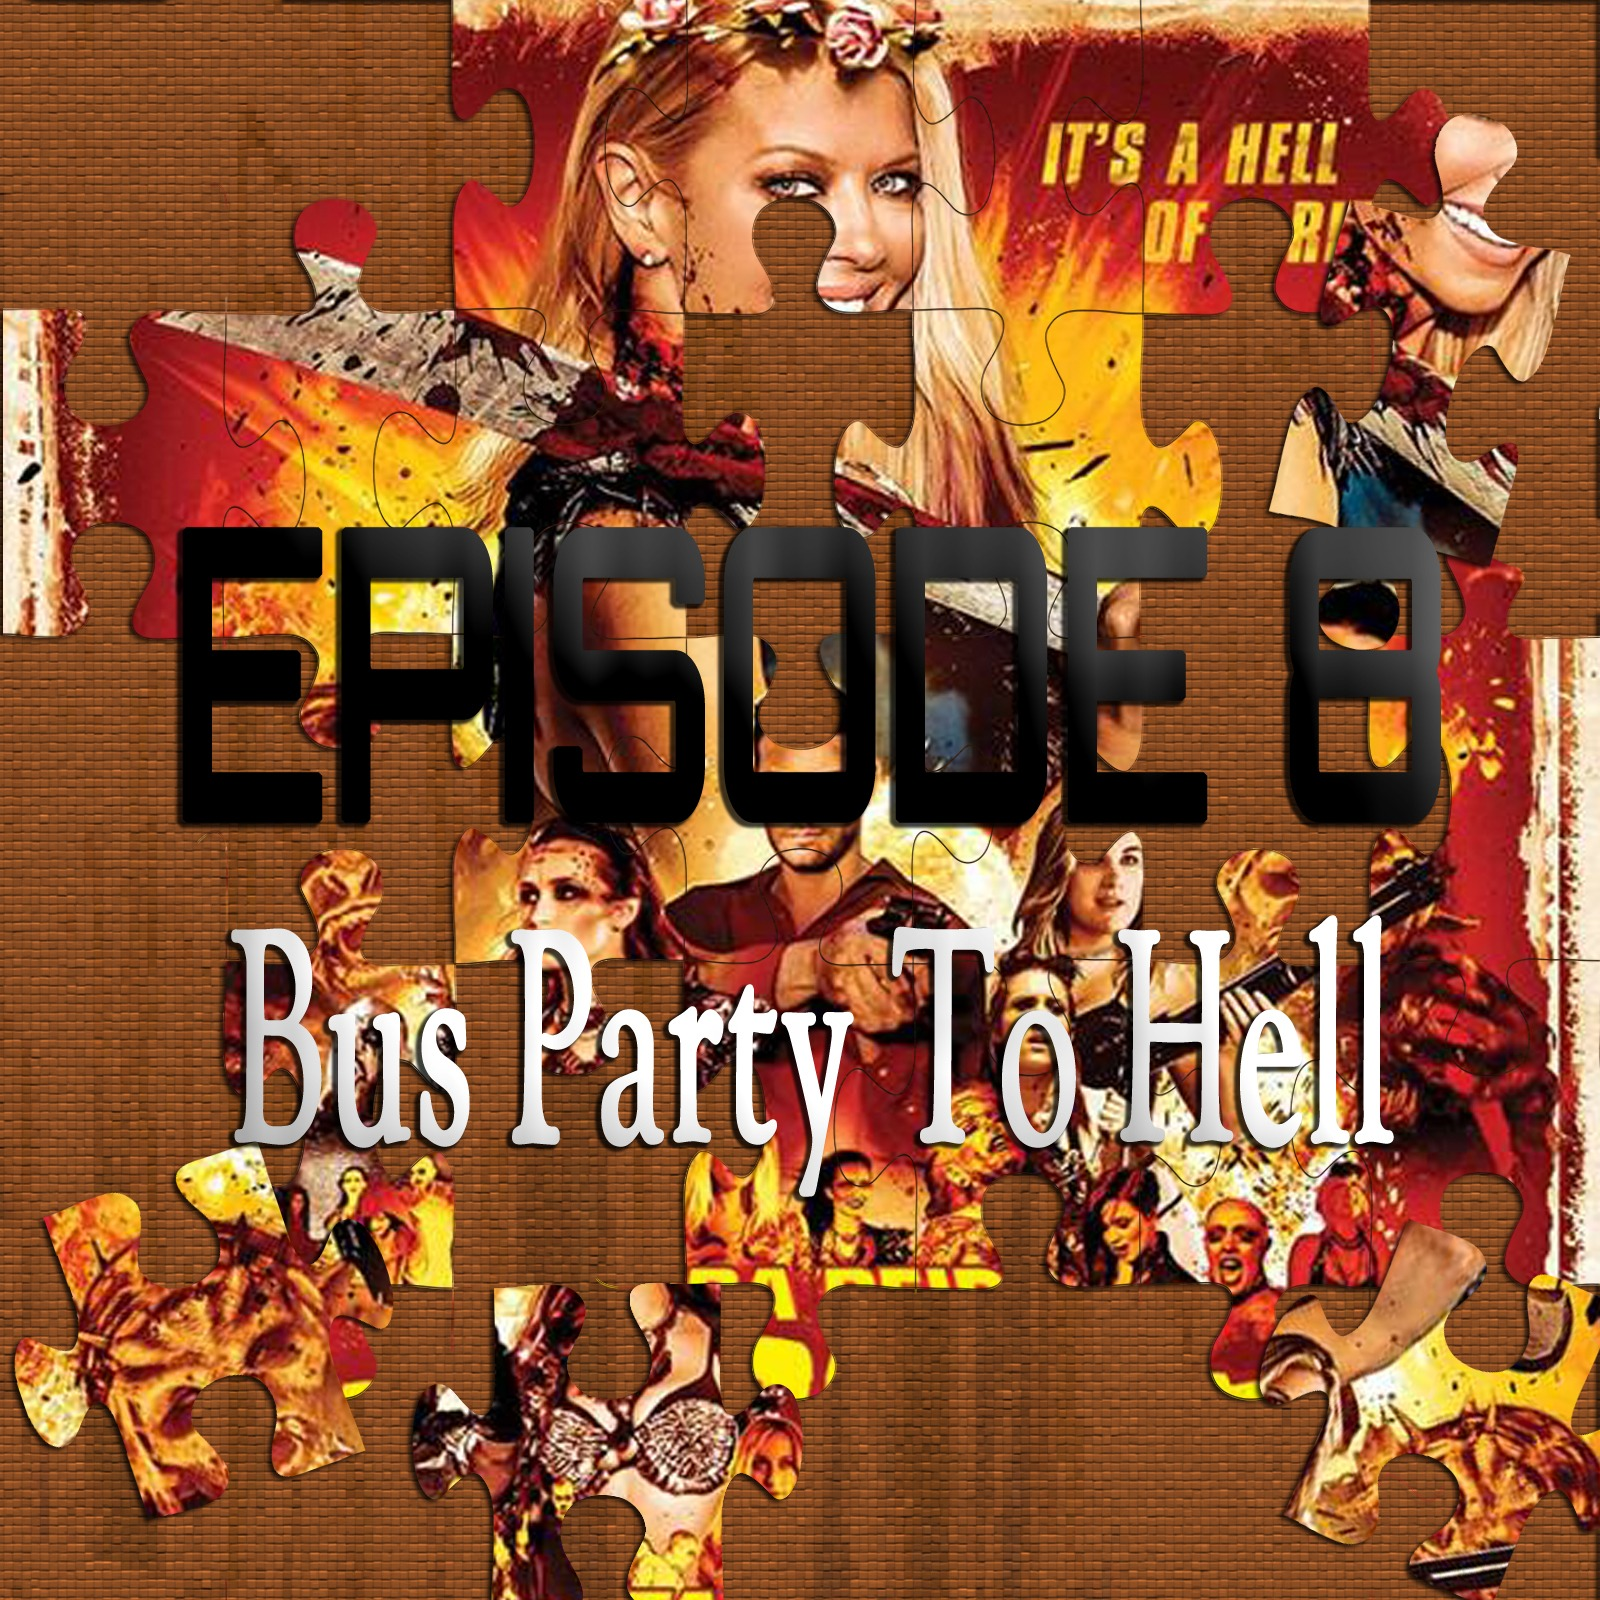 Bus Party To Hell (Featuring Chad Clinton Freeman)